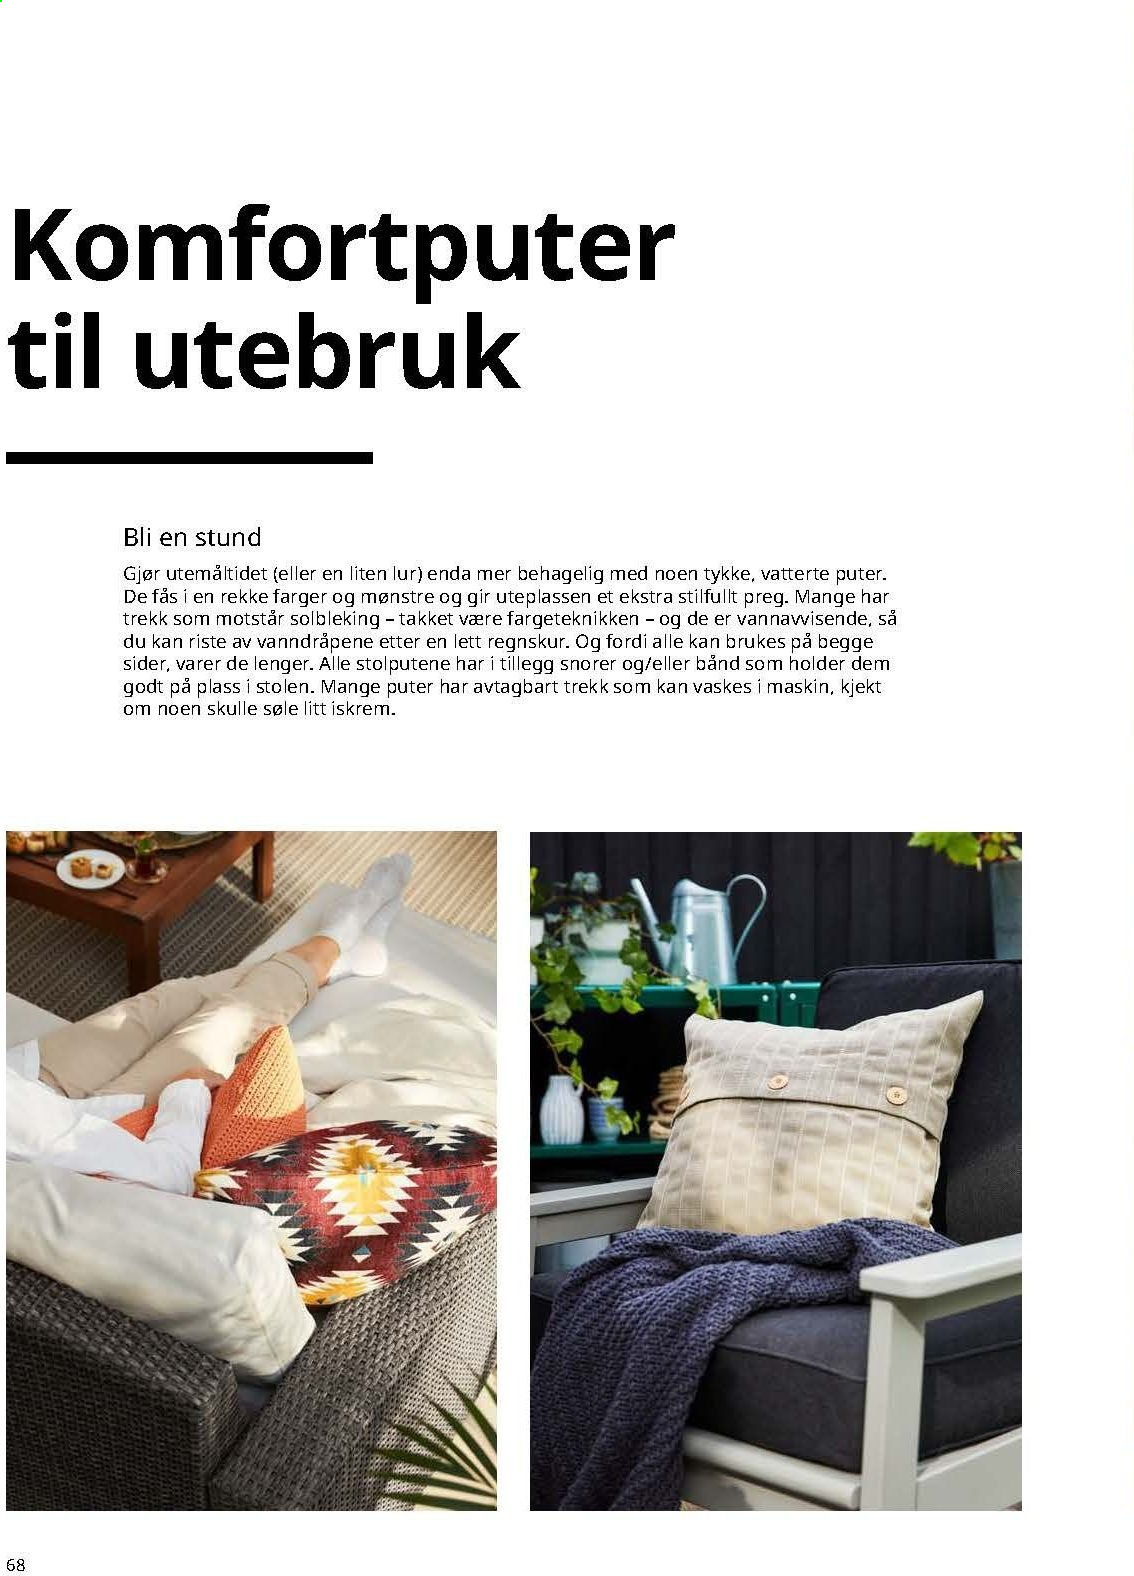 Kundeavis IKEA. Side 68.